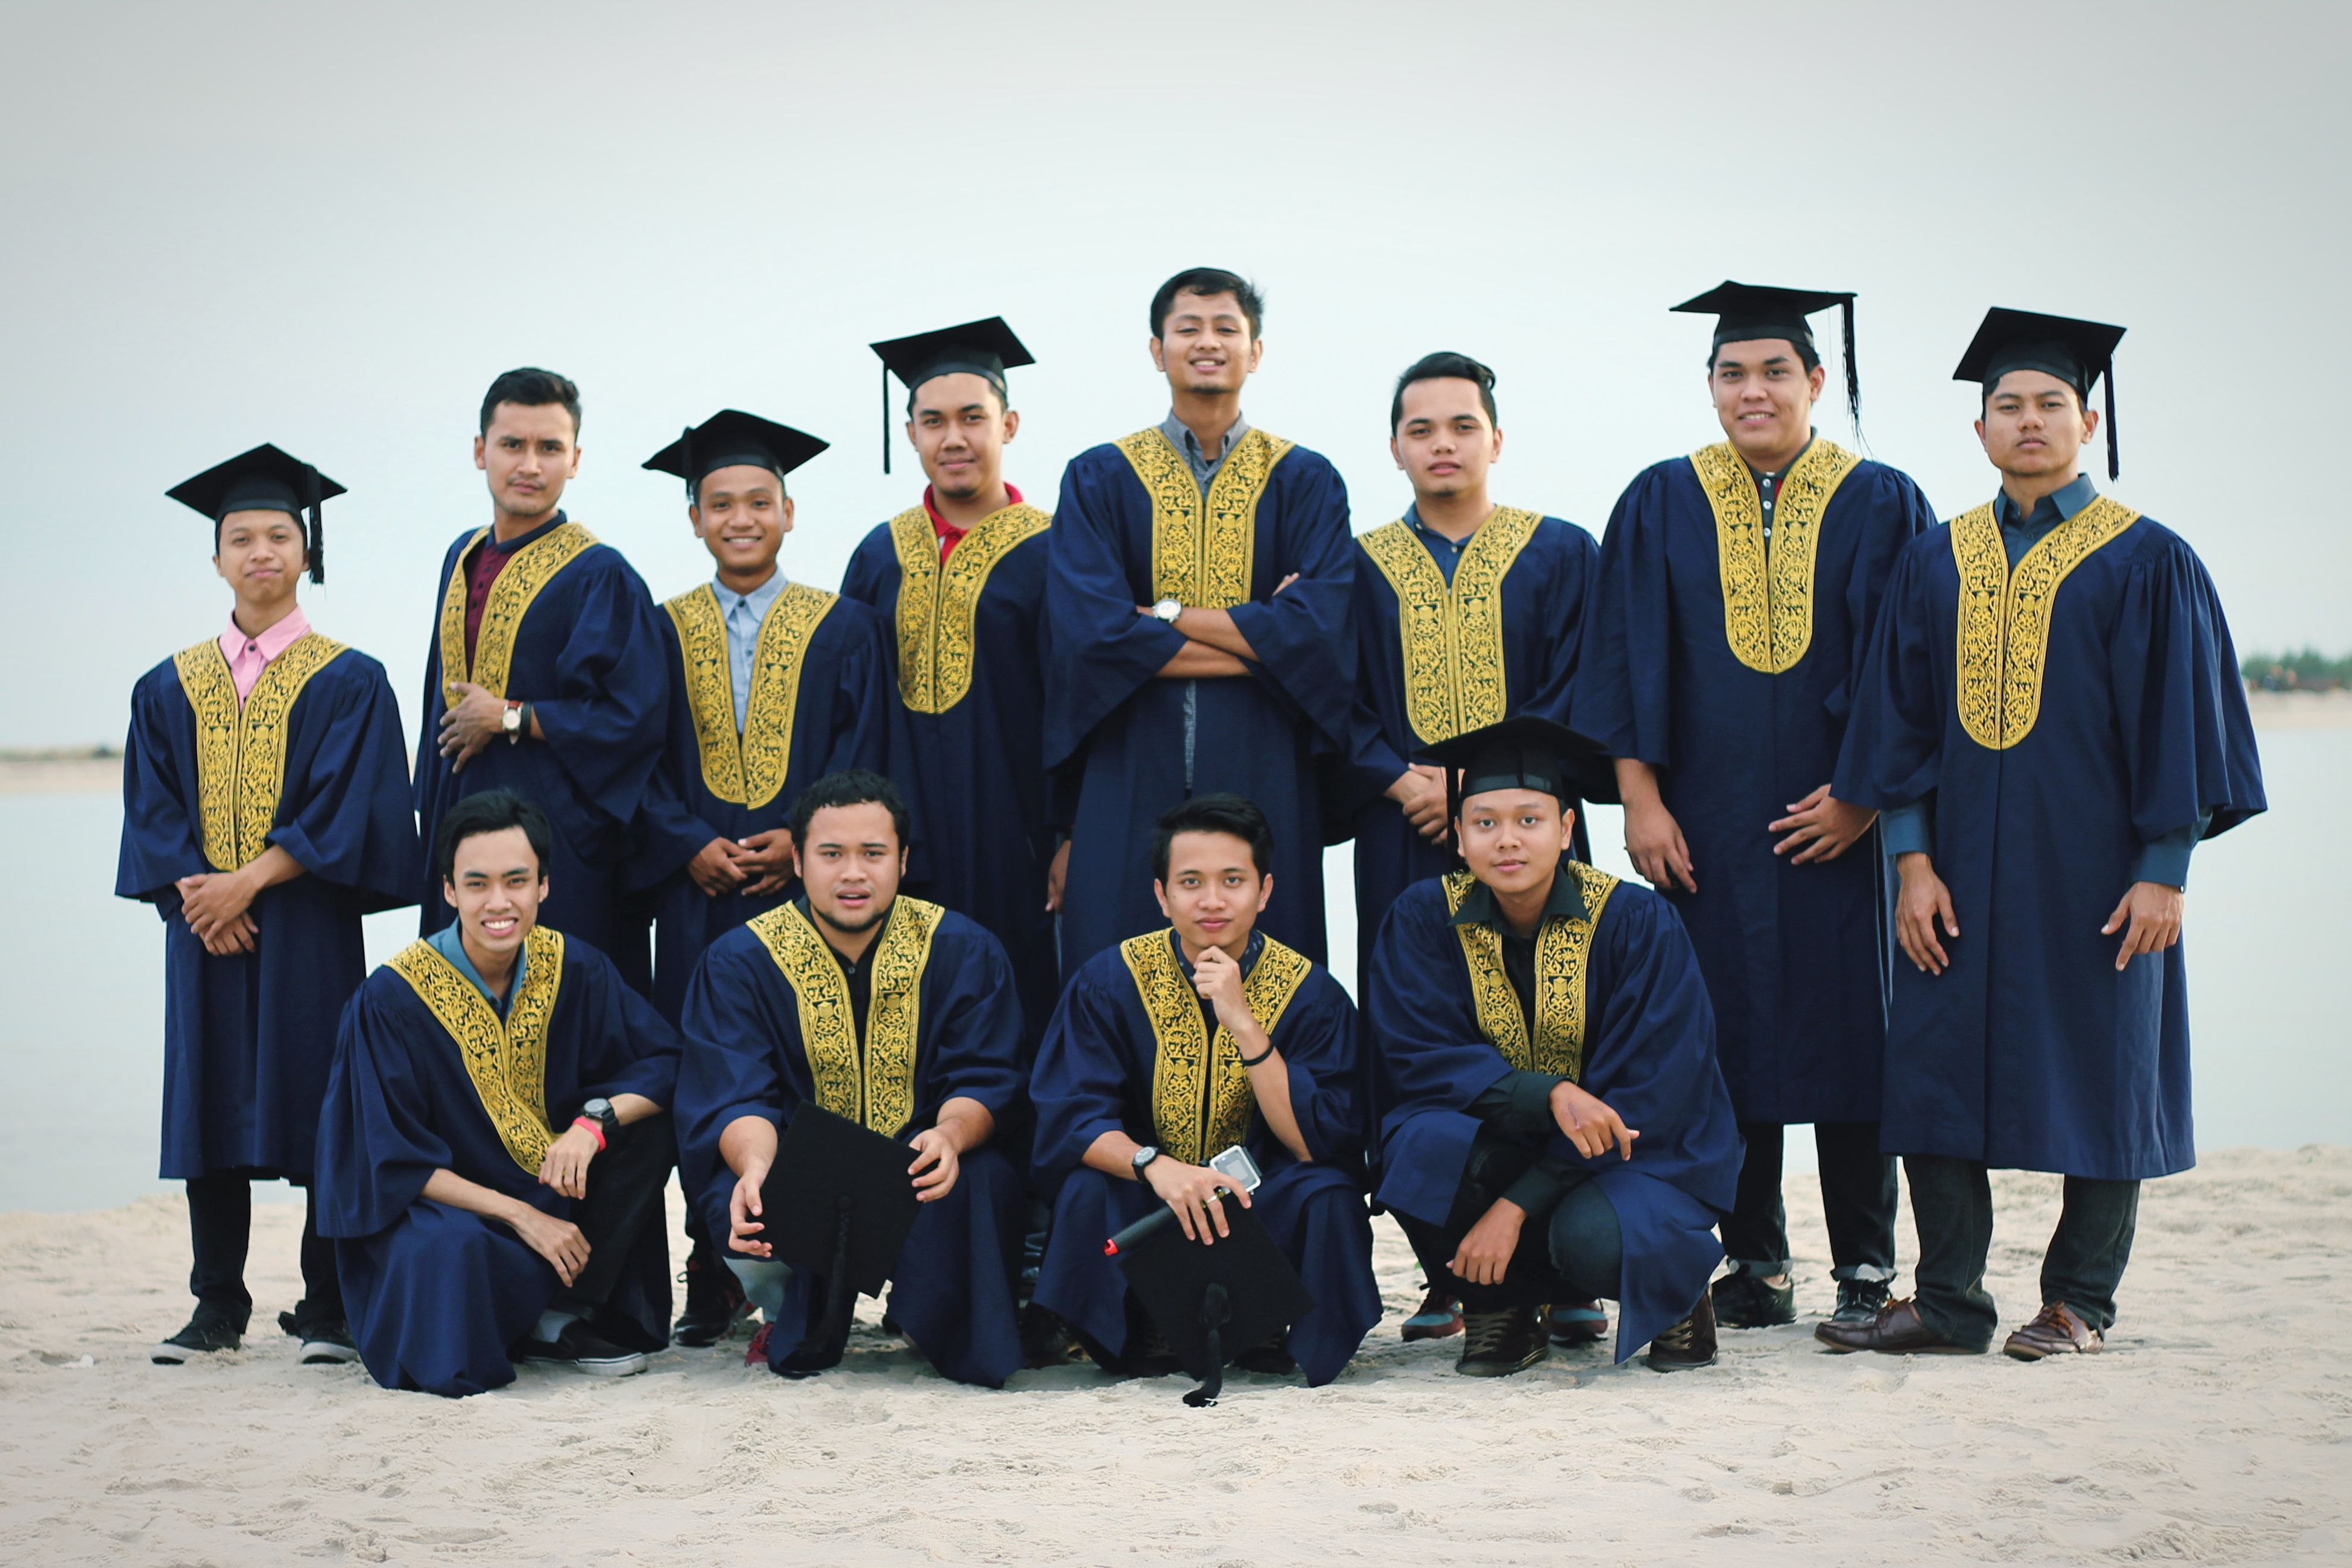 lifestyles, togetherness, leisure activity, standing, friendship, men, casual clothing, bonding, person, love, front view, side by side, young men, large group of people, copy space, vacations, full length, happiness